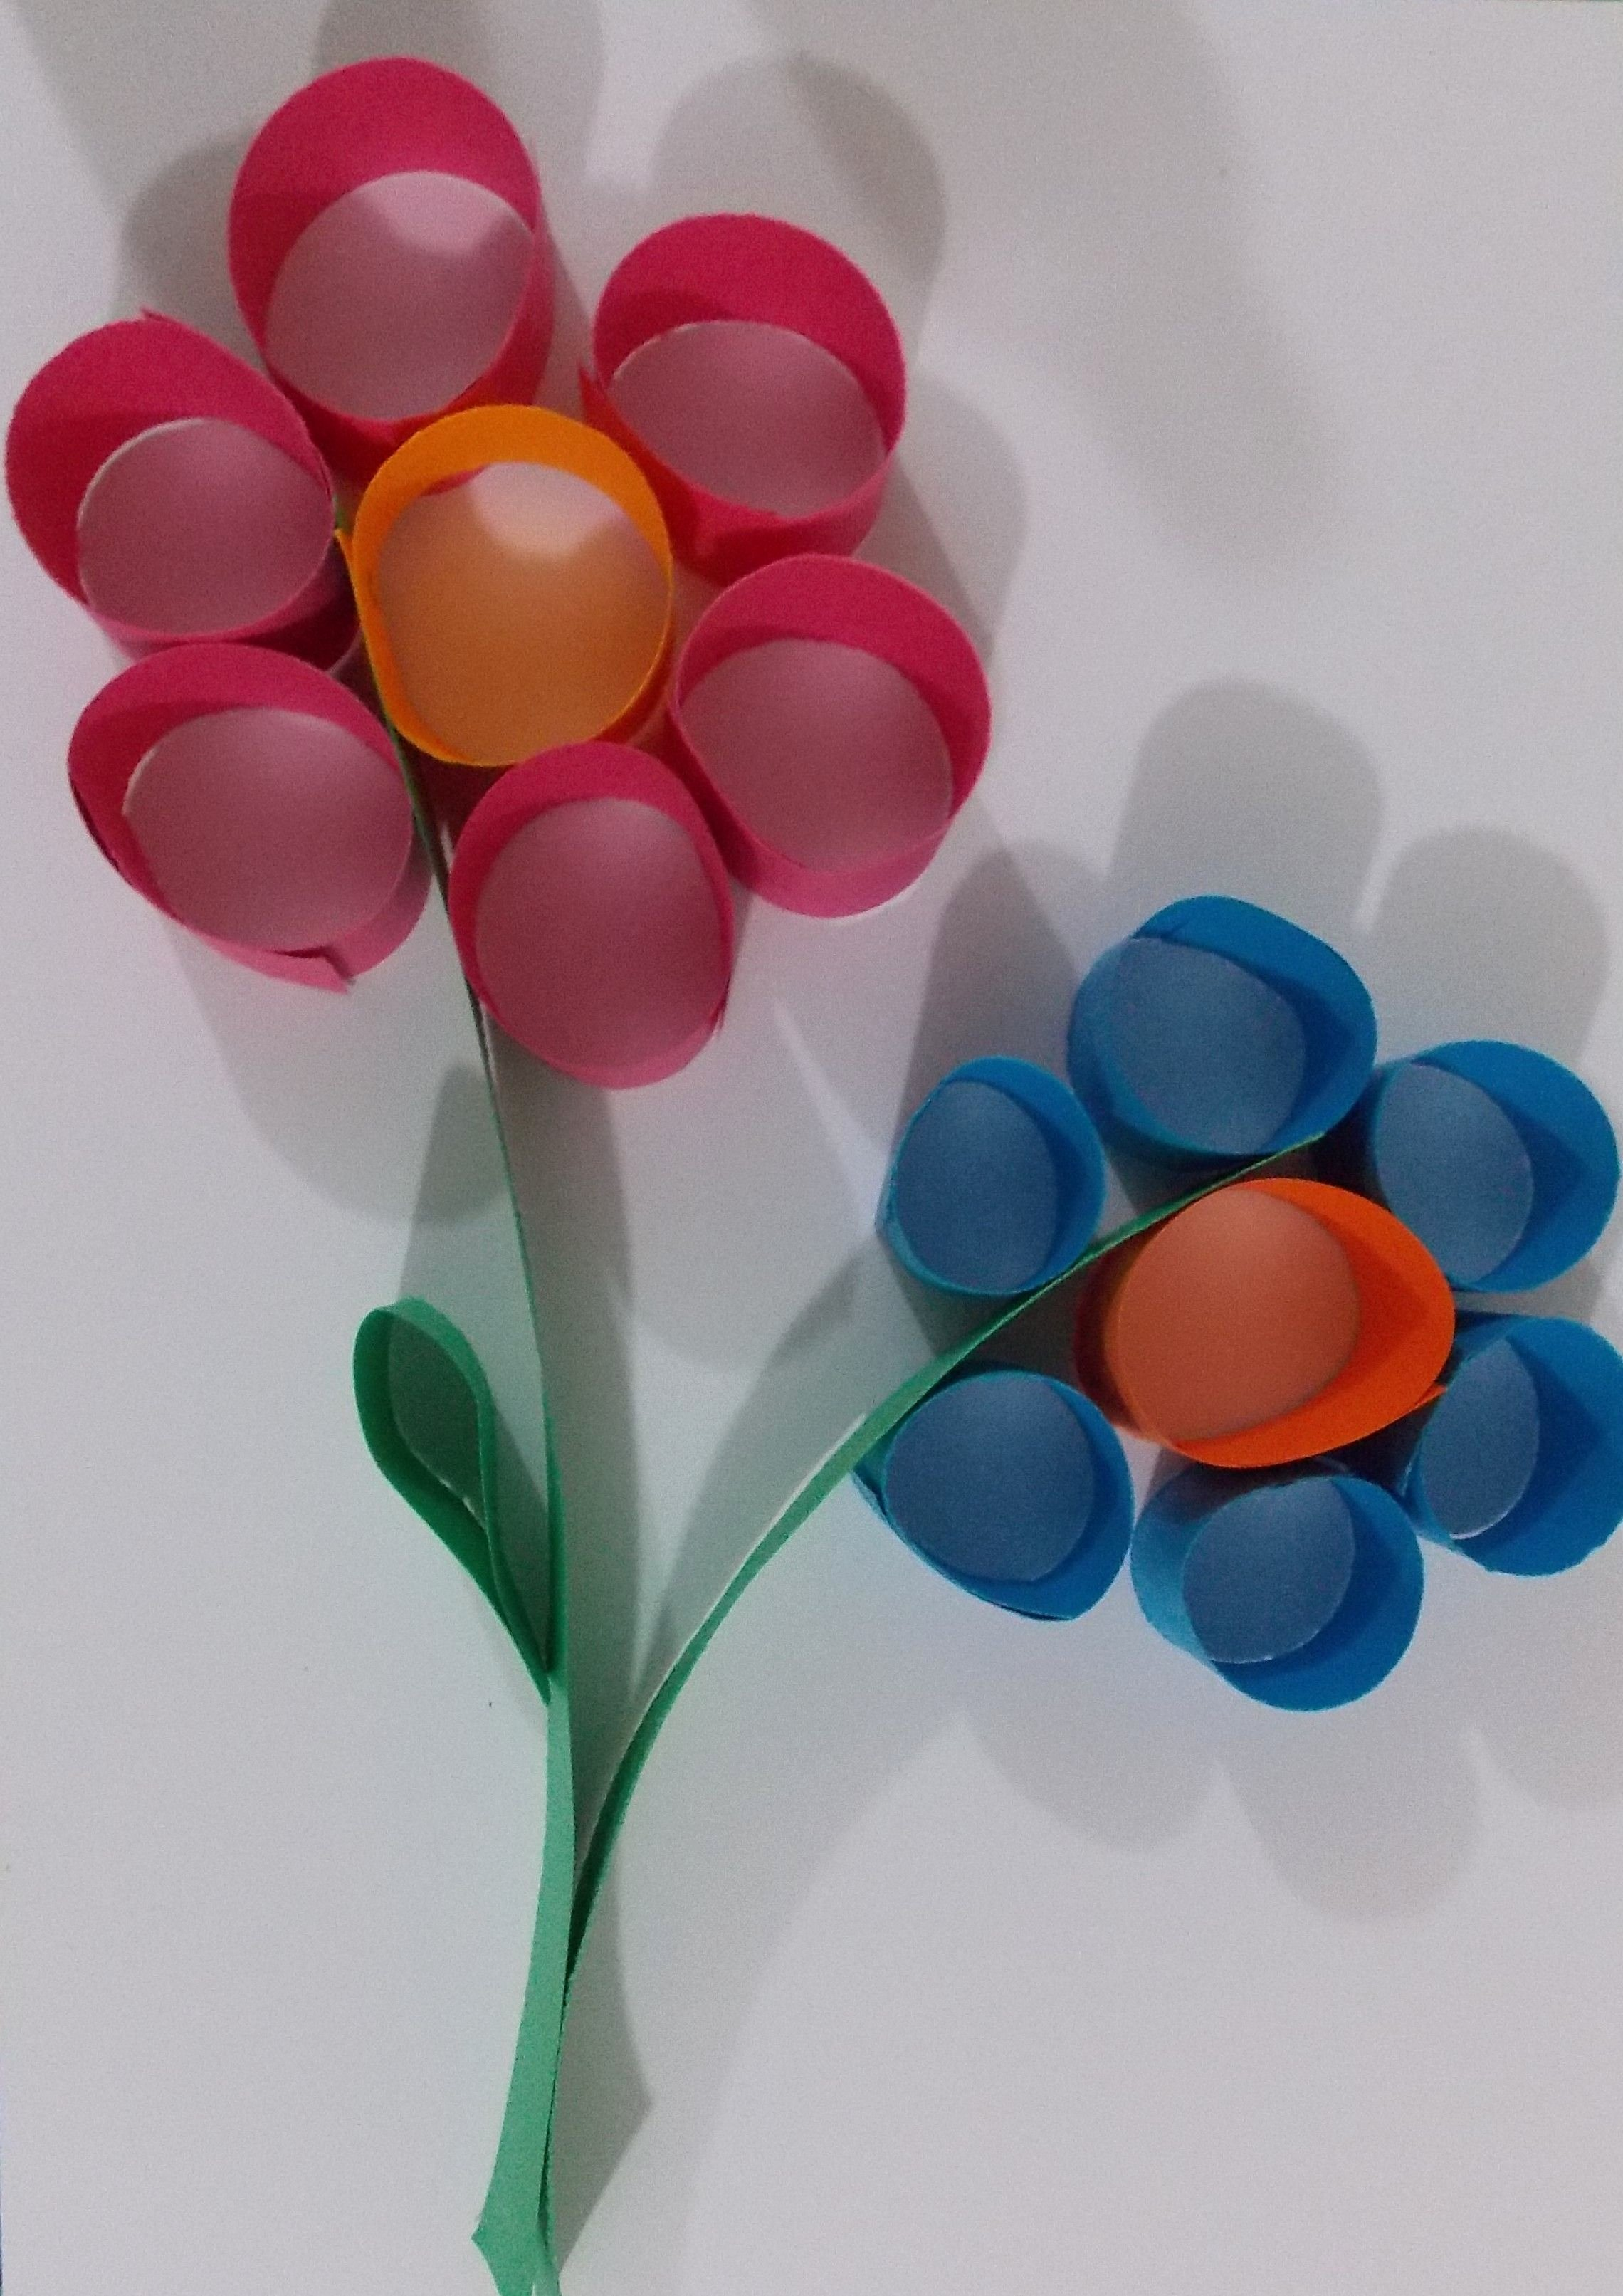 Construction Paper Crafts for Adults Fresh Flower Paper Craft Art Class Clients